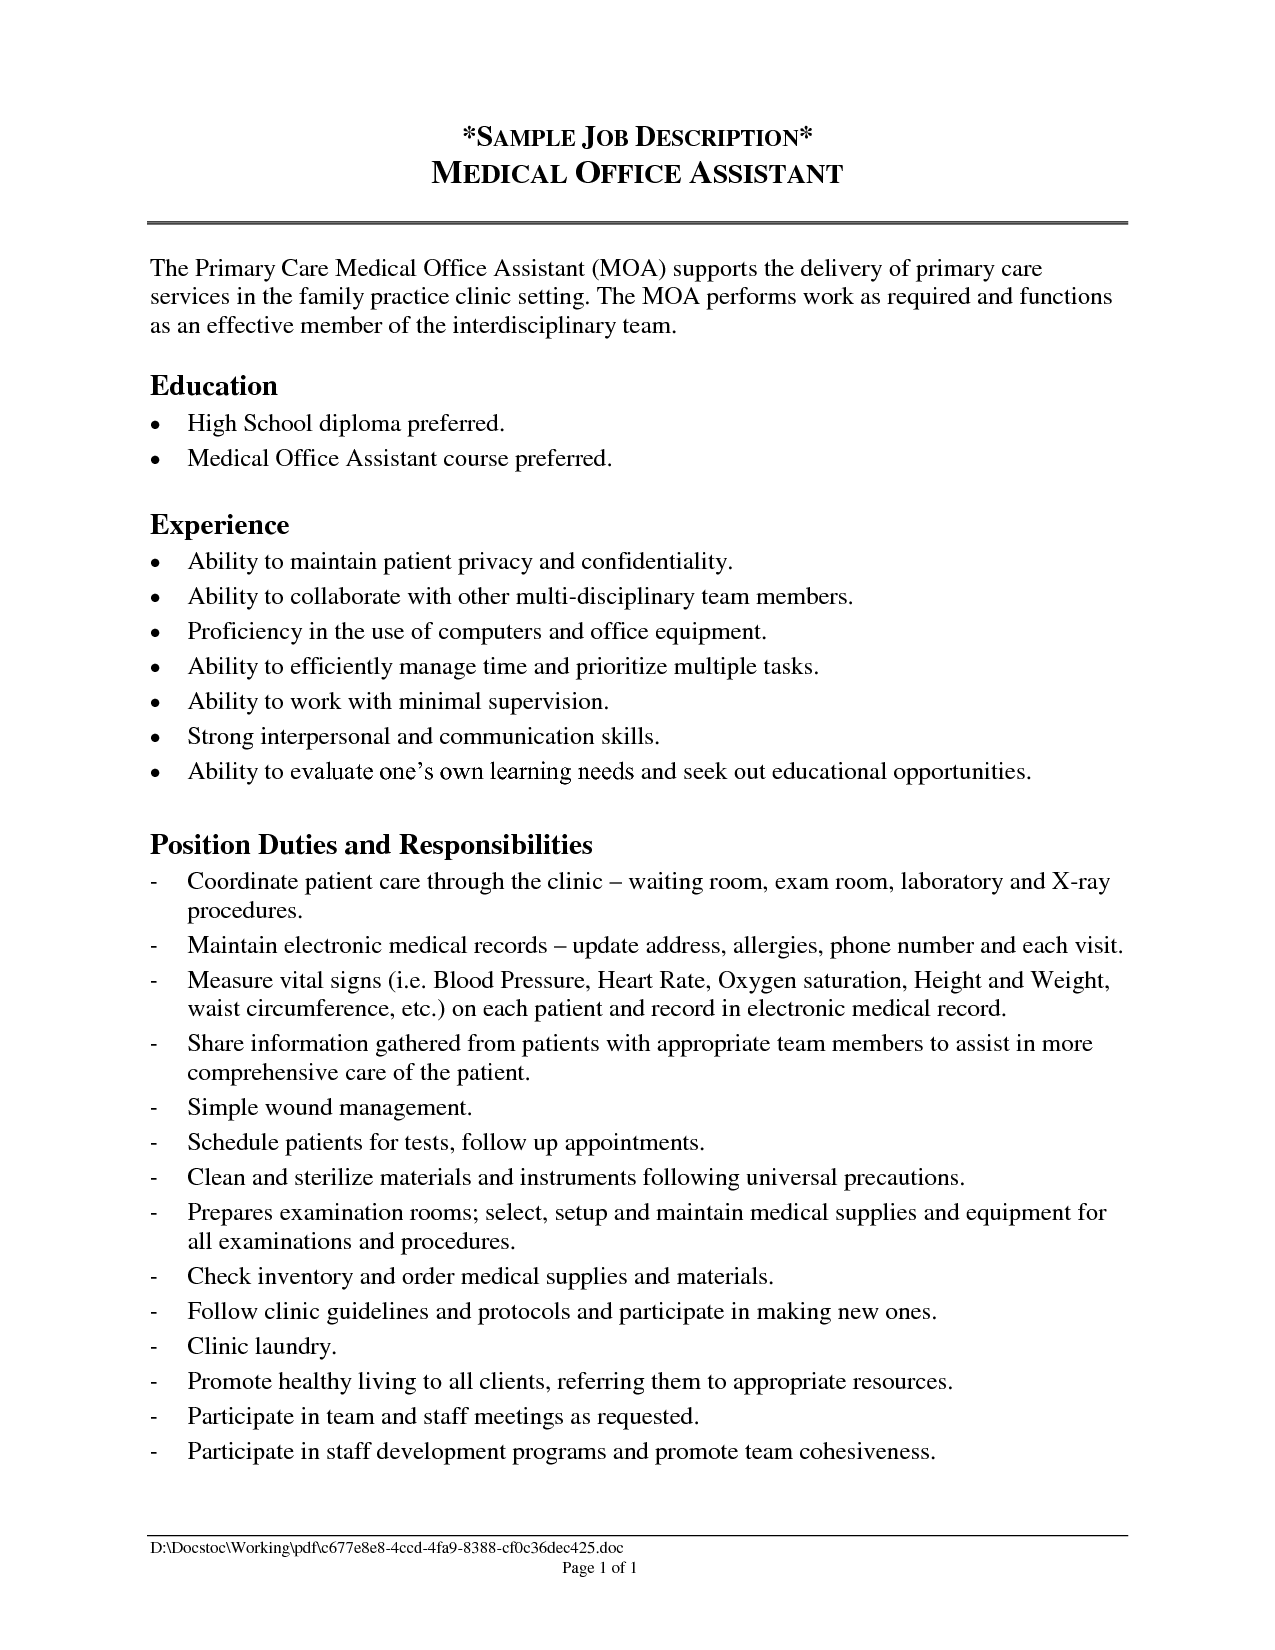 Resume For An Office Assistant Office Assistant Job Description Resume 2016